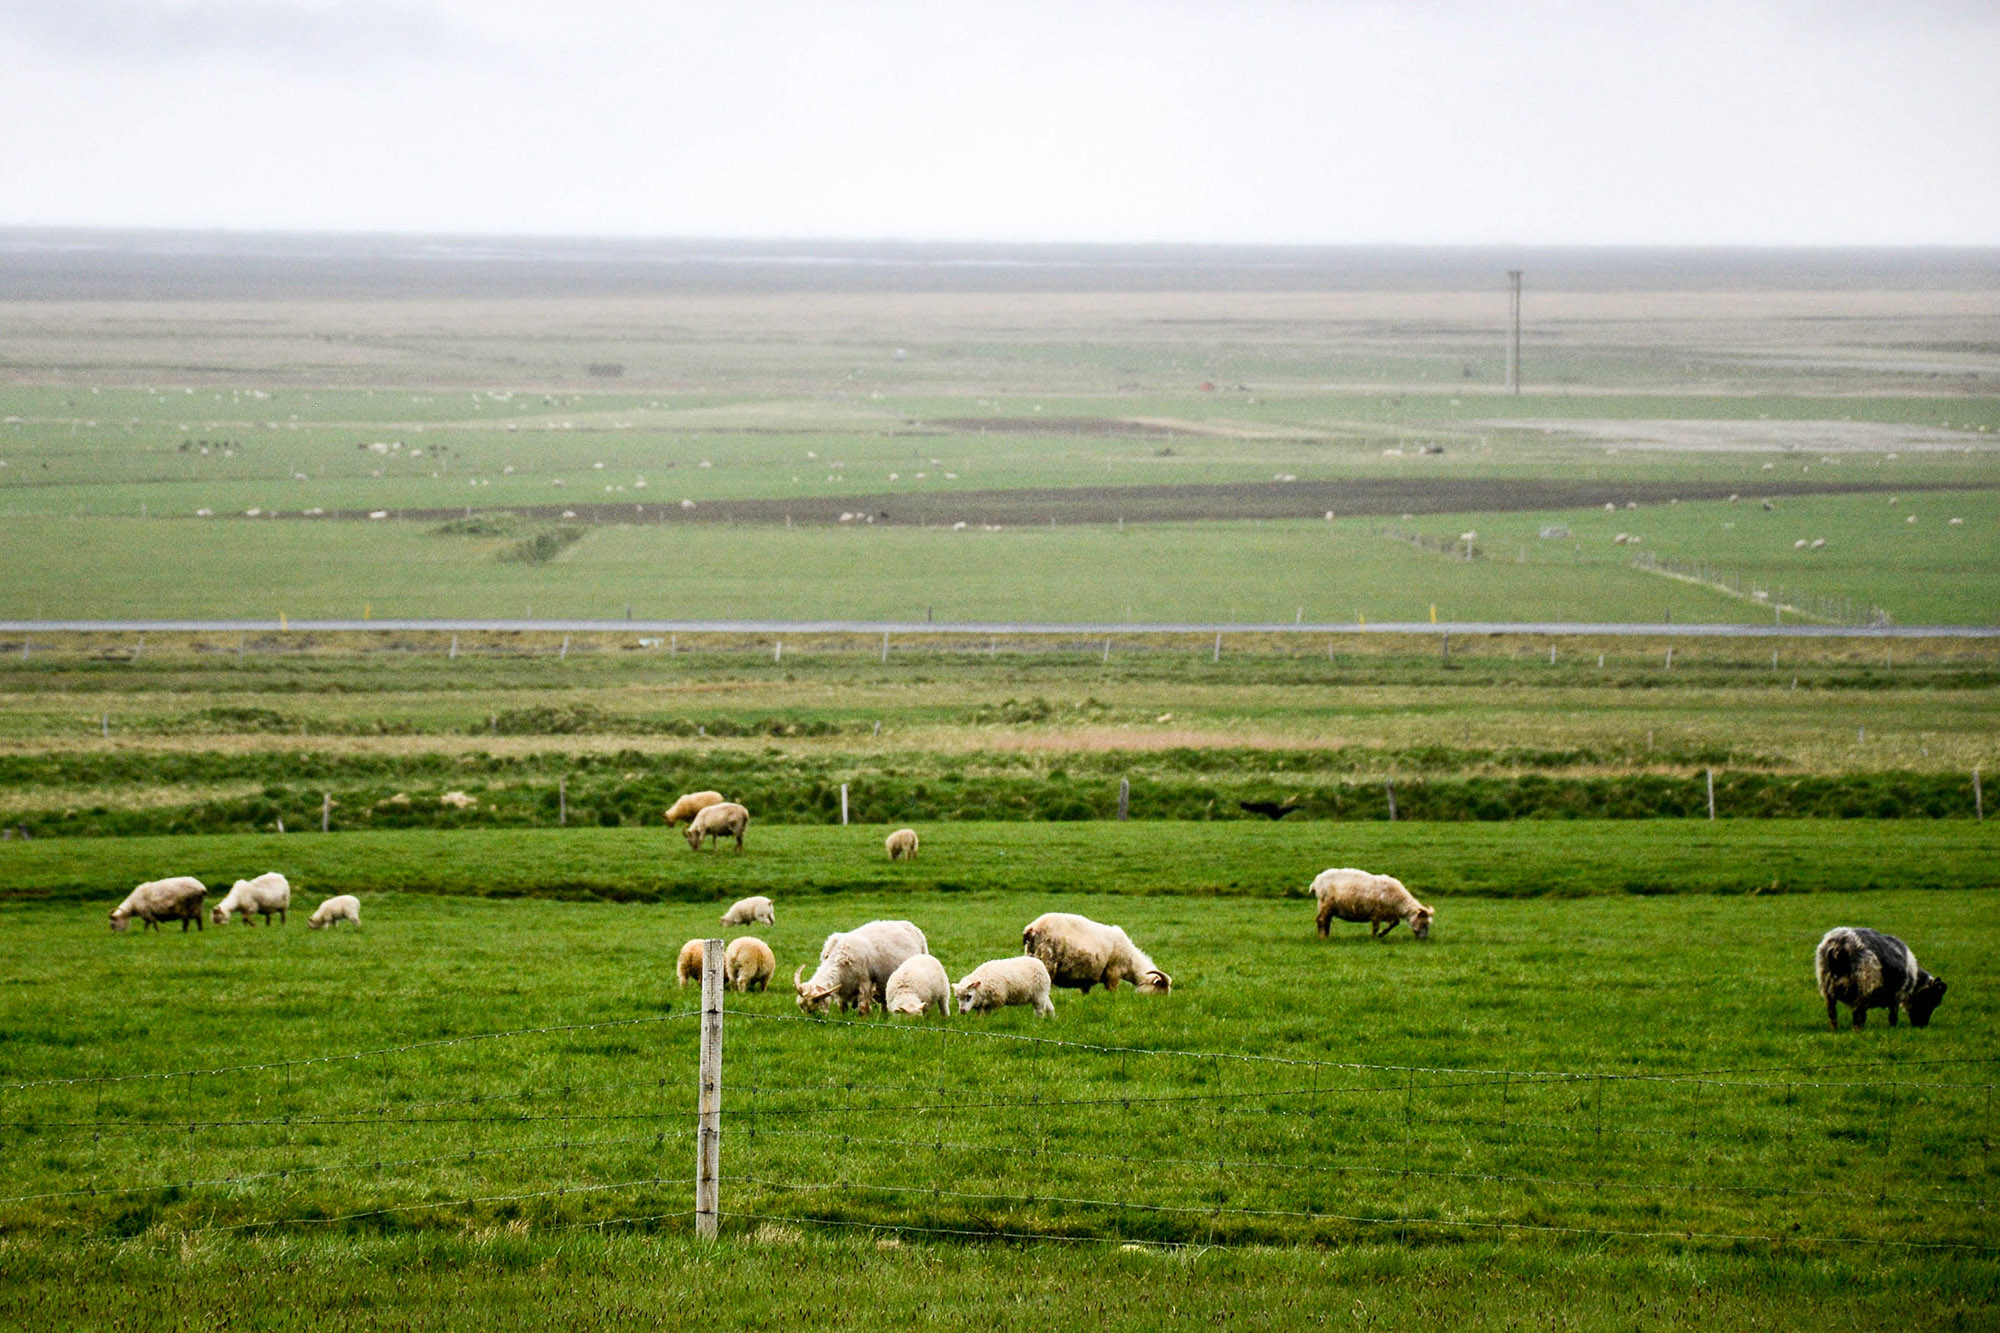 Epic Landscape in Iceland with green grass and sheep 2